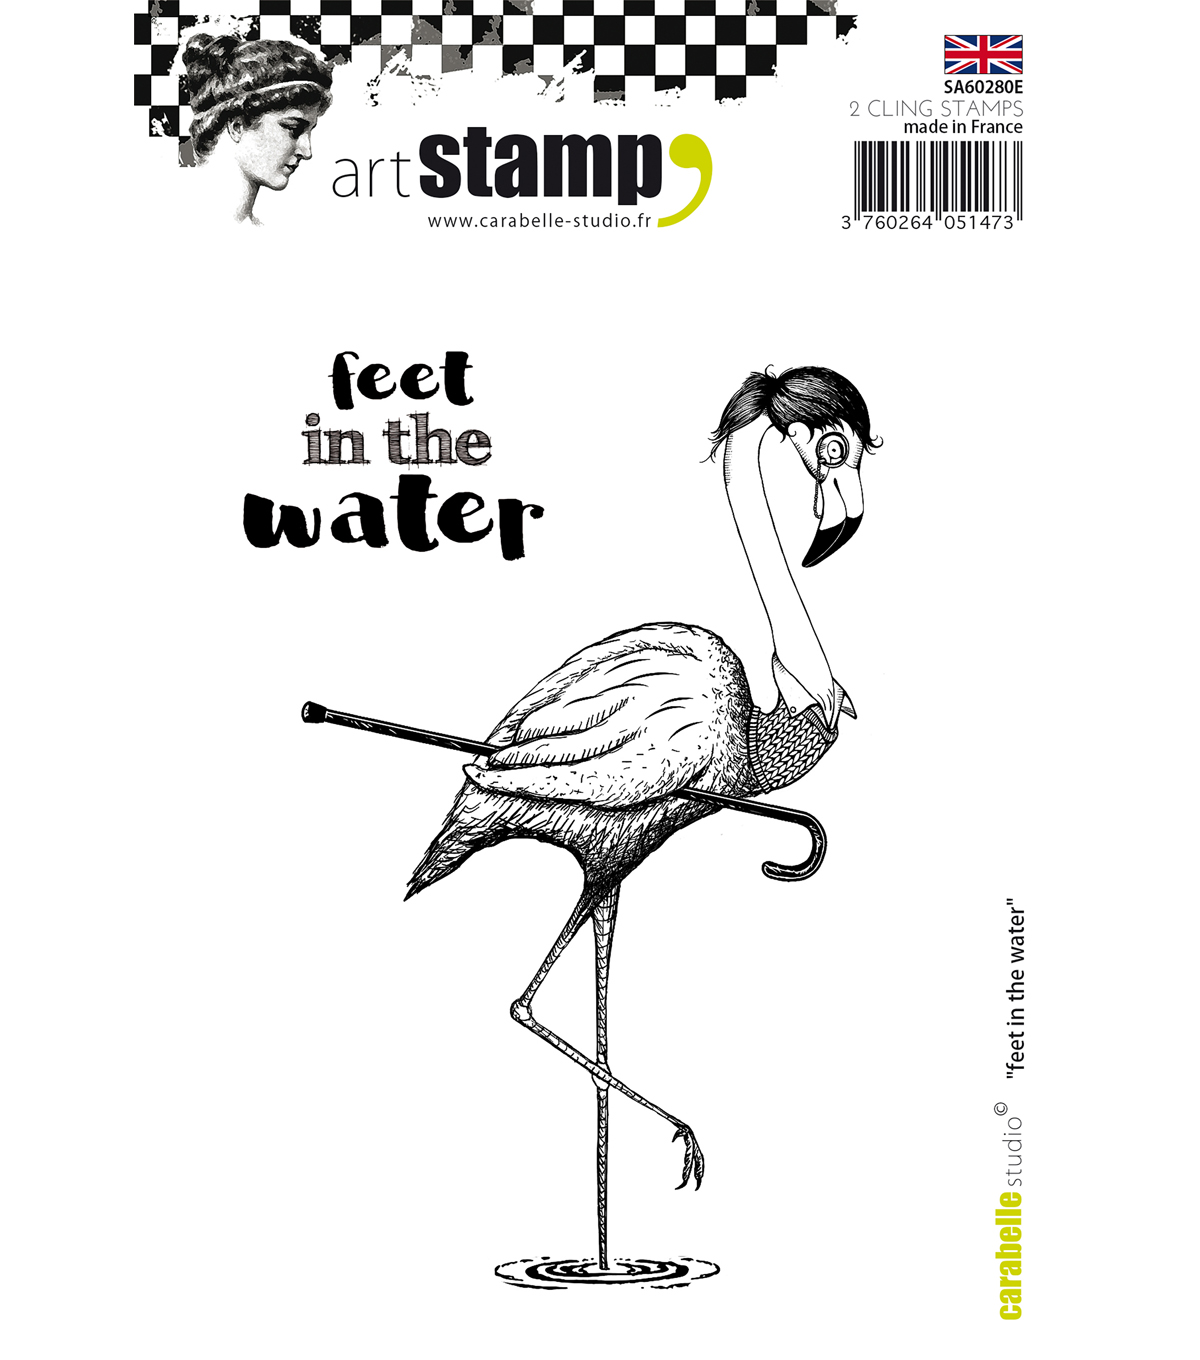 Carabelle Studio Cling Stamp A6-Feet In The Water